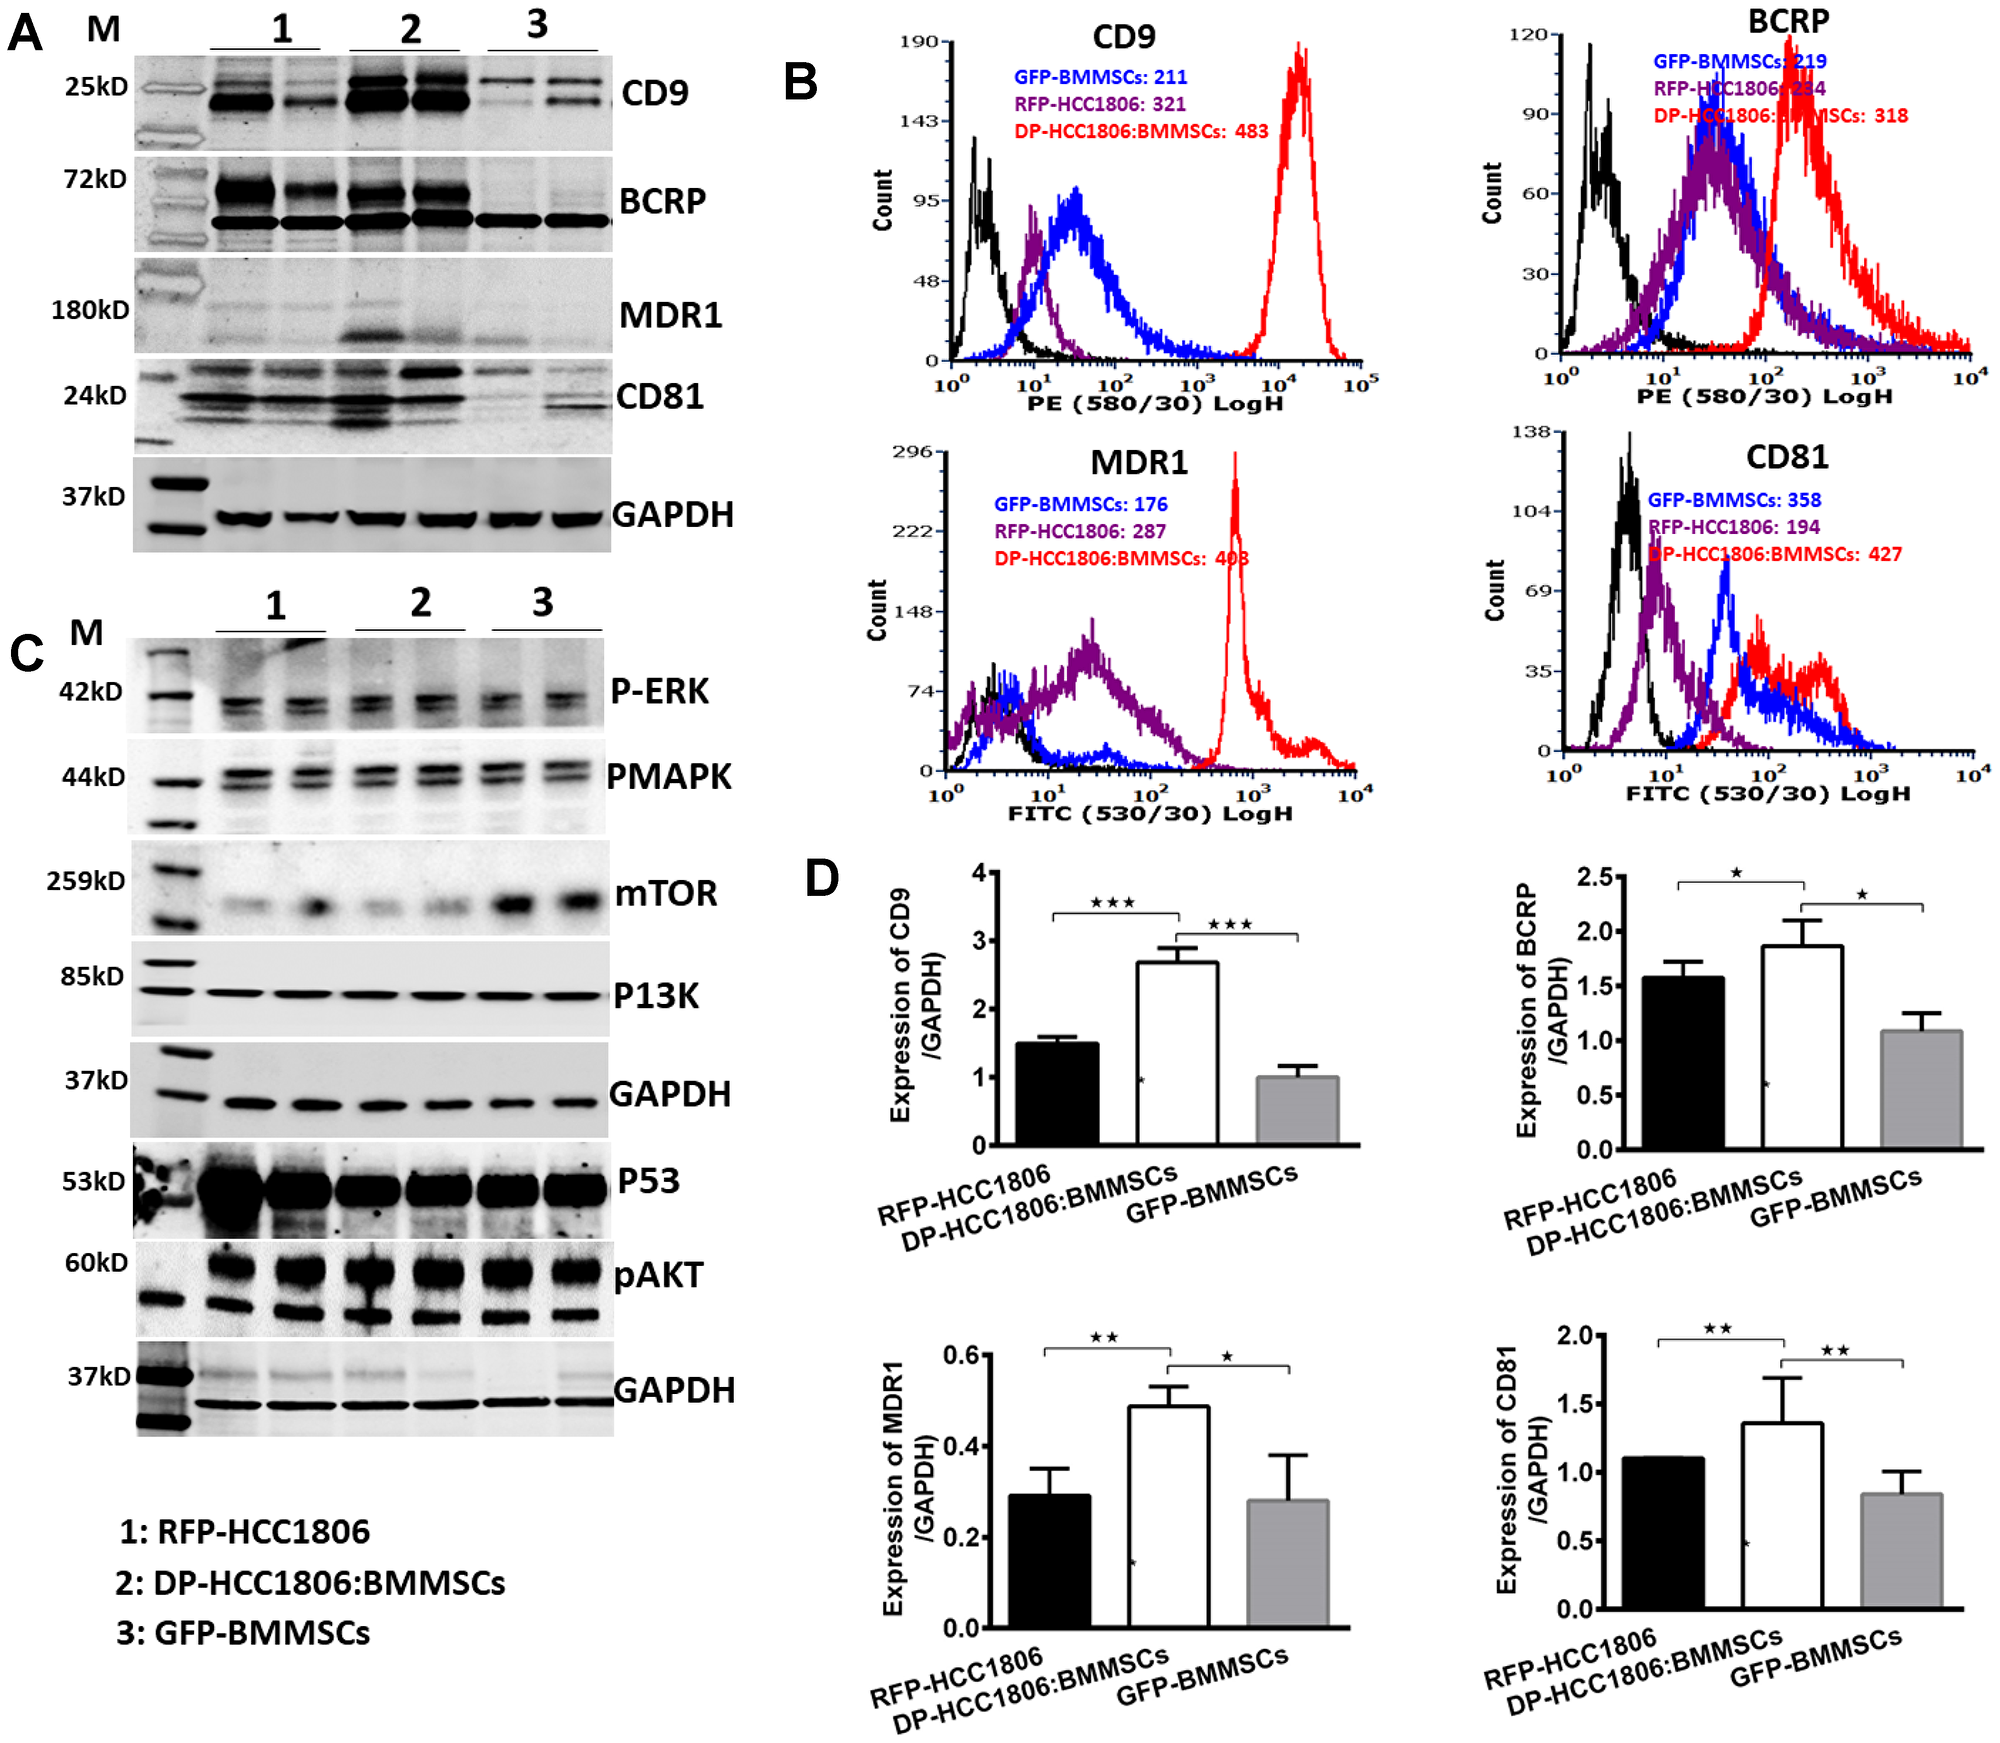 Differential expression of tetraspanins and drug resistance proteins in DP-HCC1806:BMMSCs.